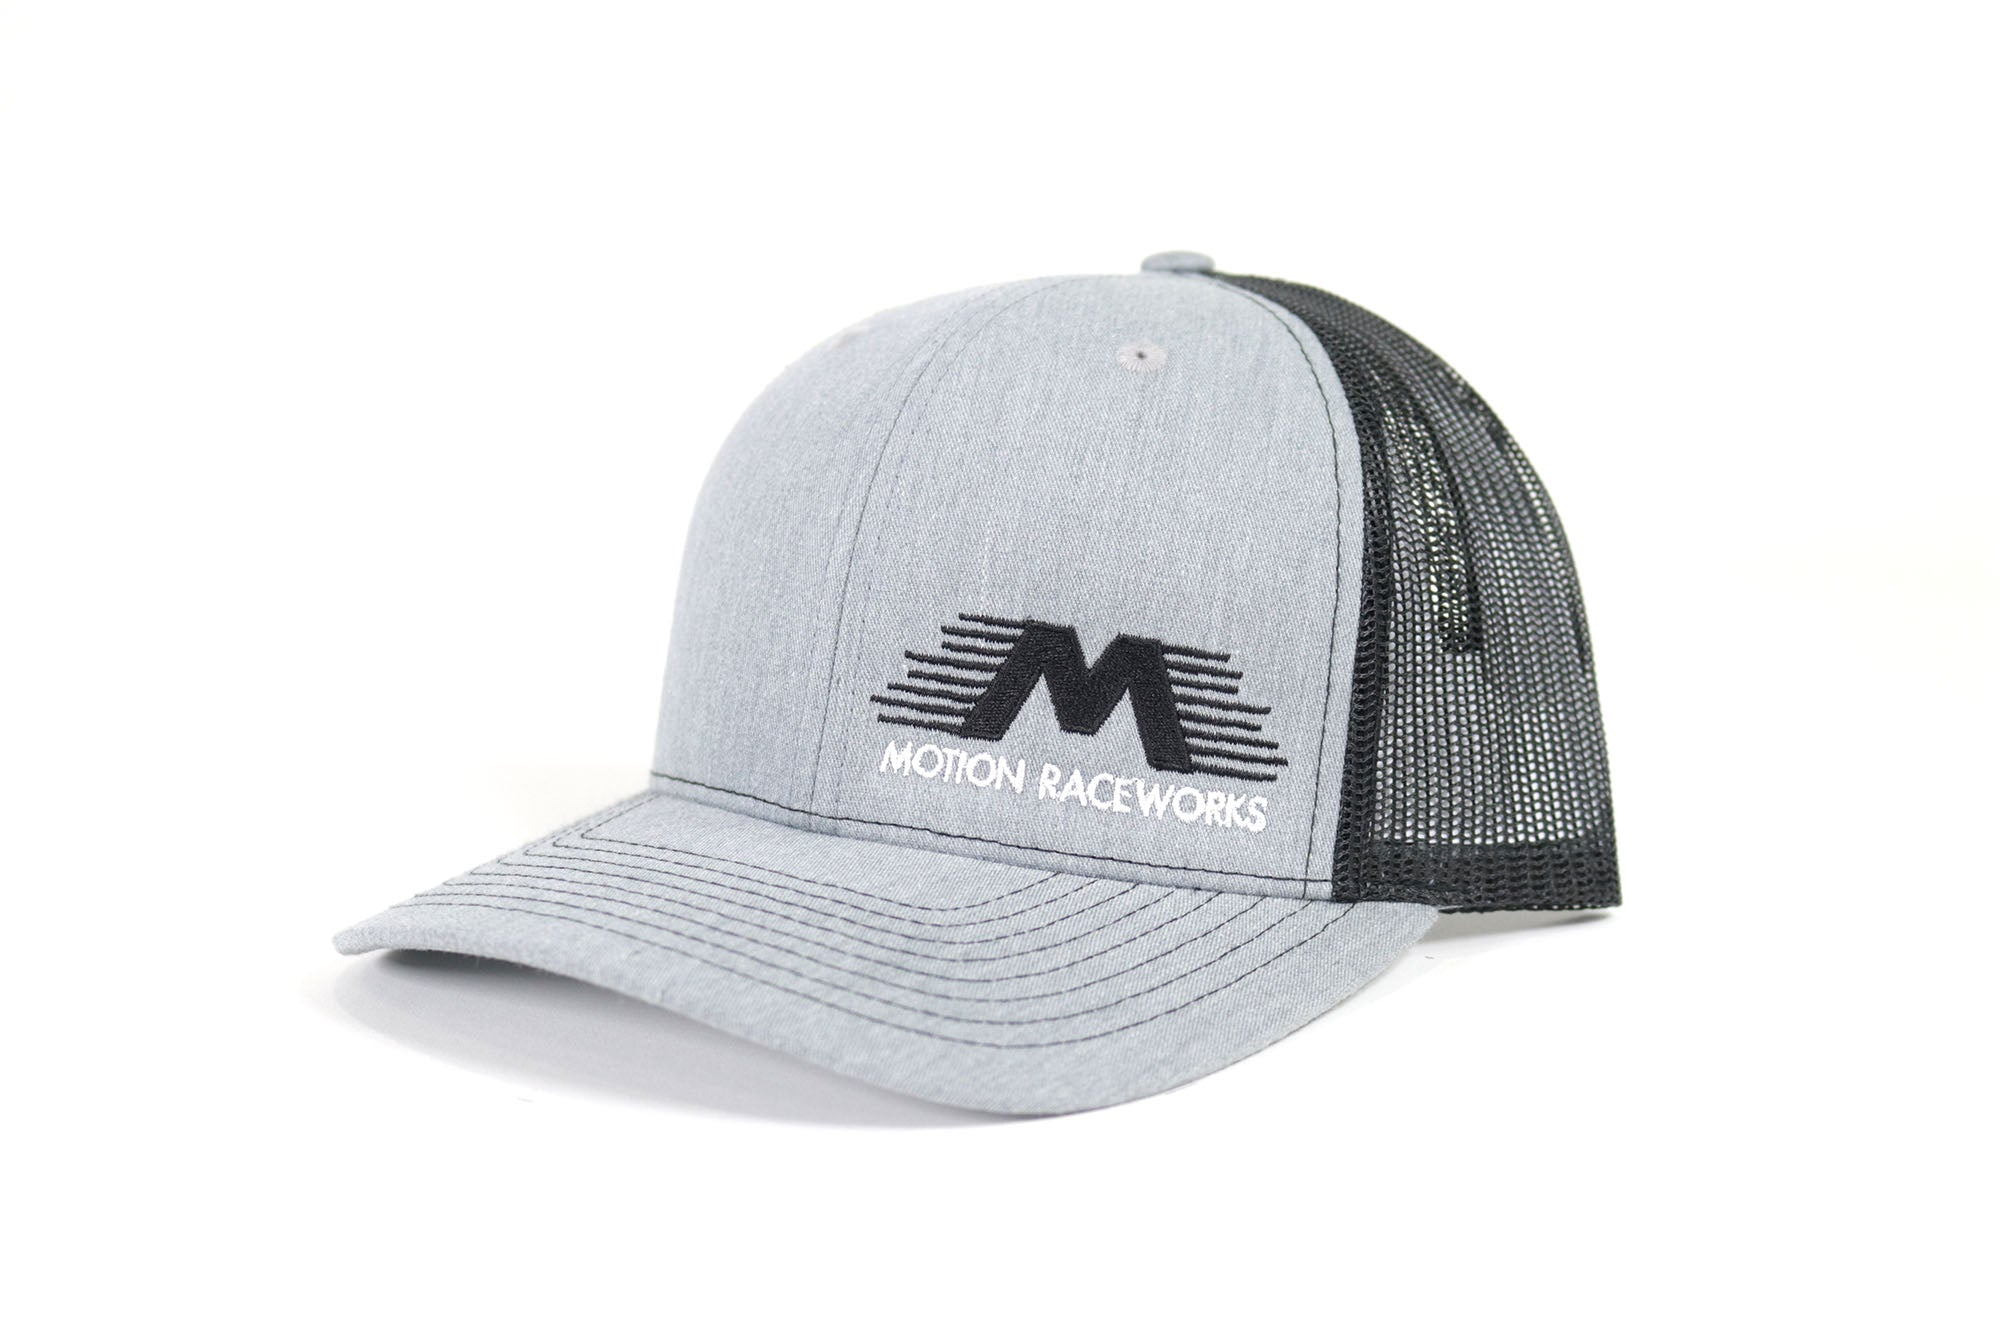 Black/Heather Grey Motion Raceworks Trucker Snapback Hat (Mesh Back)-Motion Raceworks-Motion Raceworks